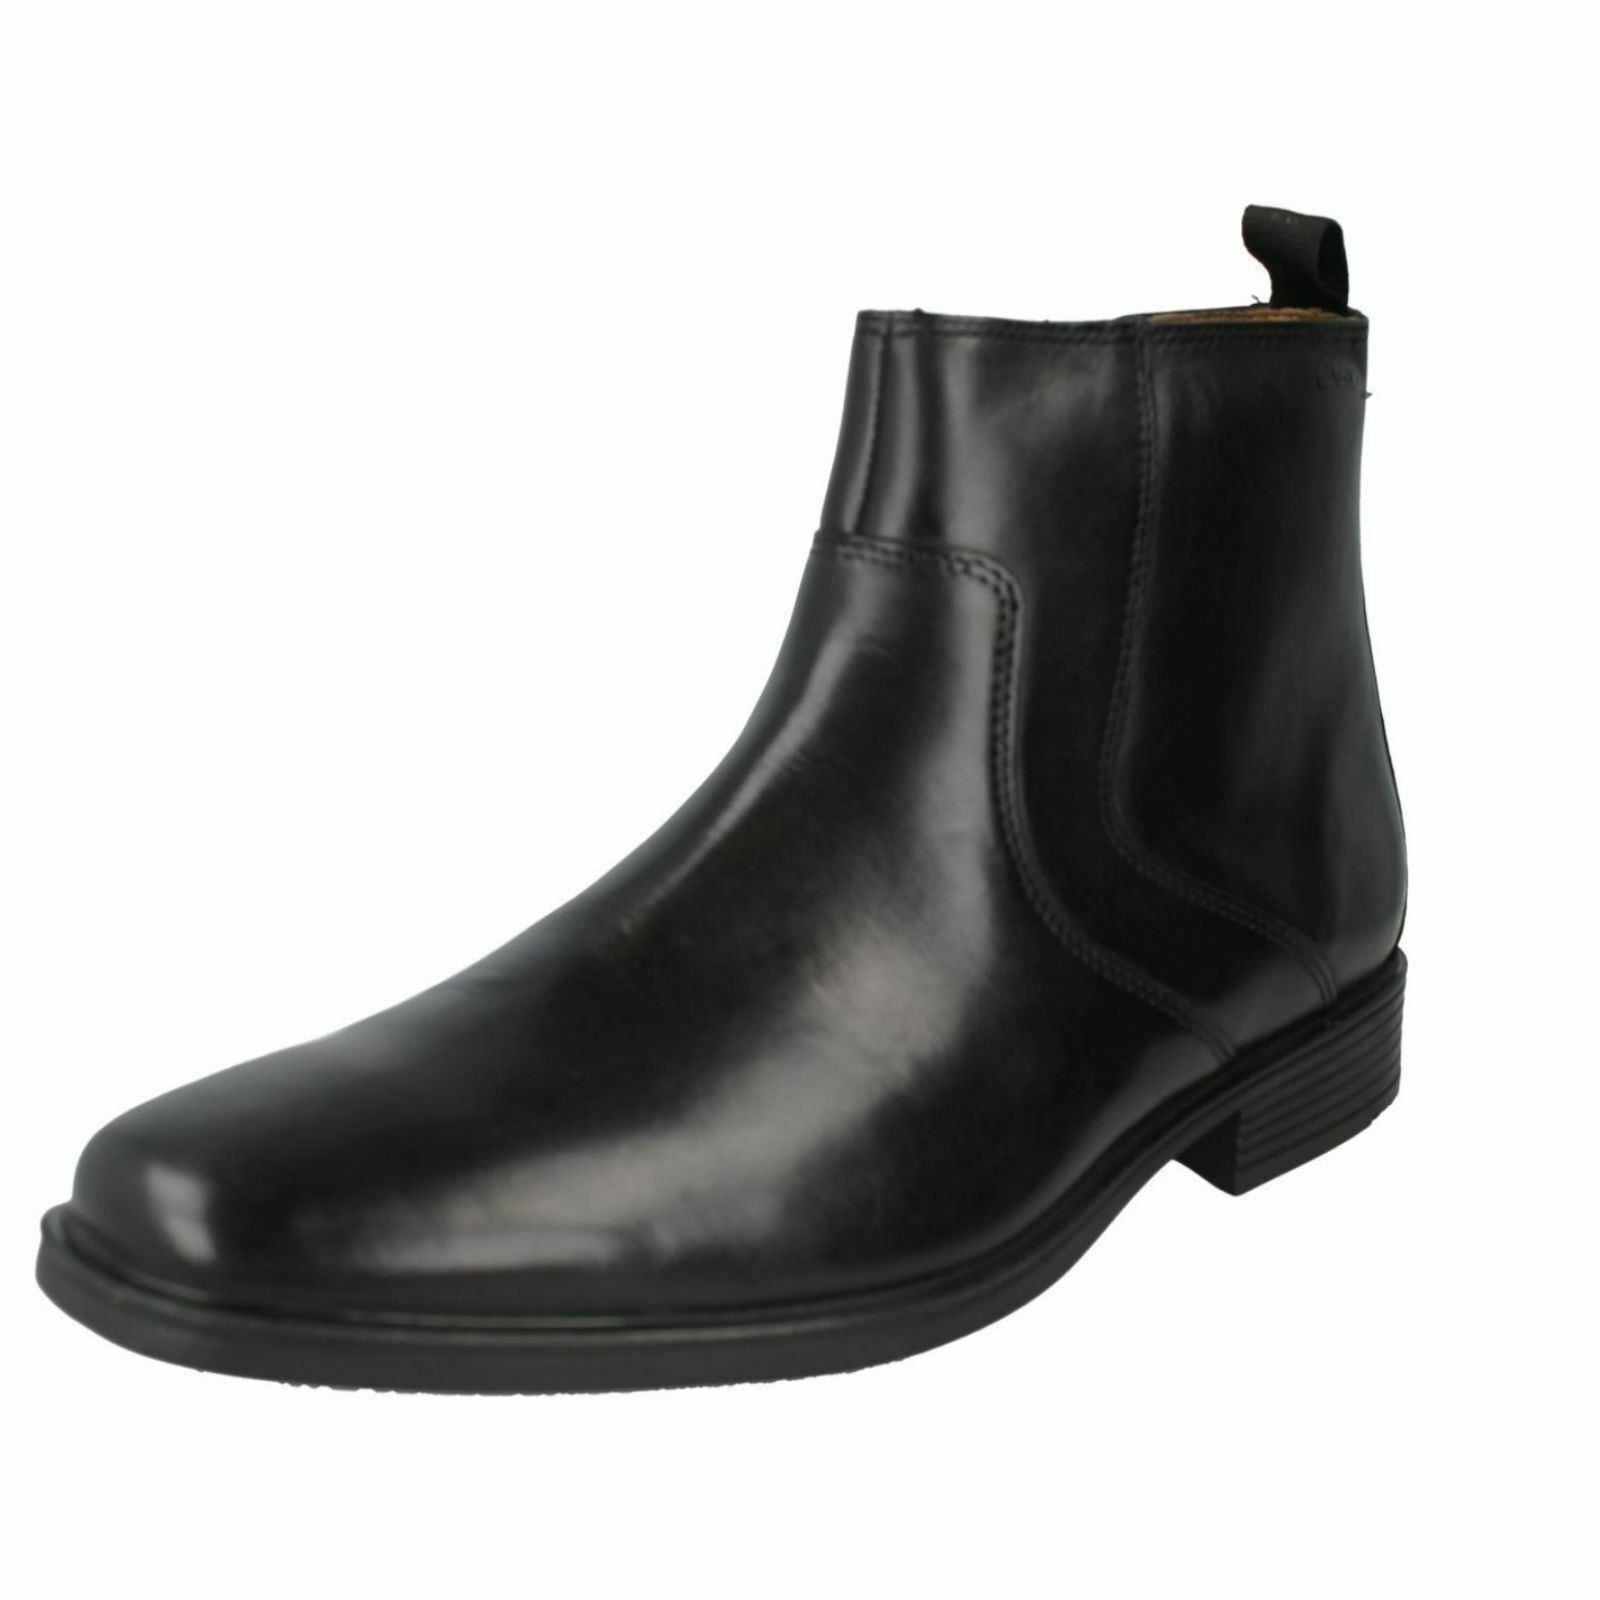 Clarks 'Tilden Zip' Men's Smart Black Leather Ankle Boots G Fitting